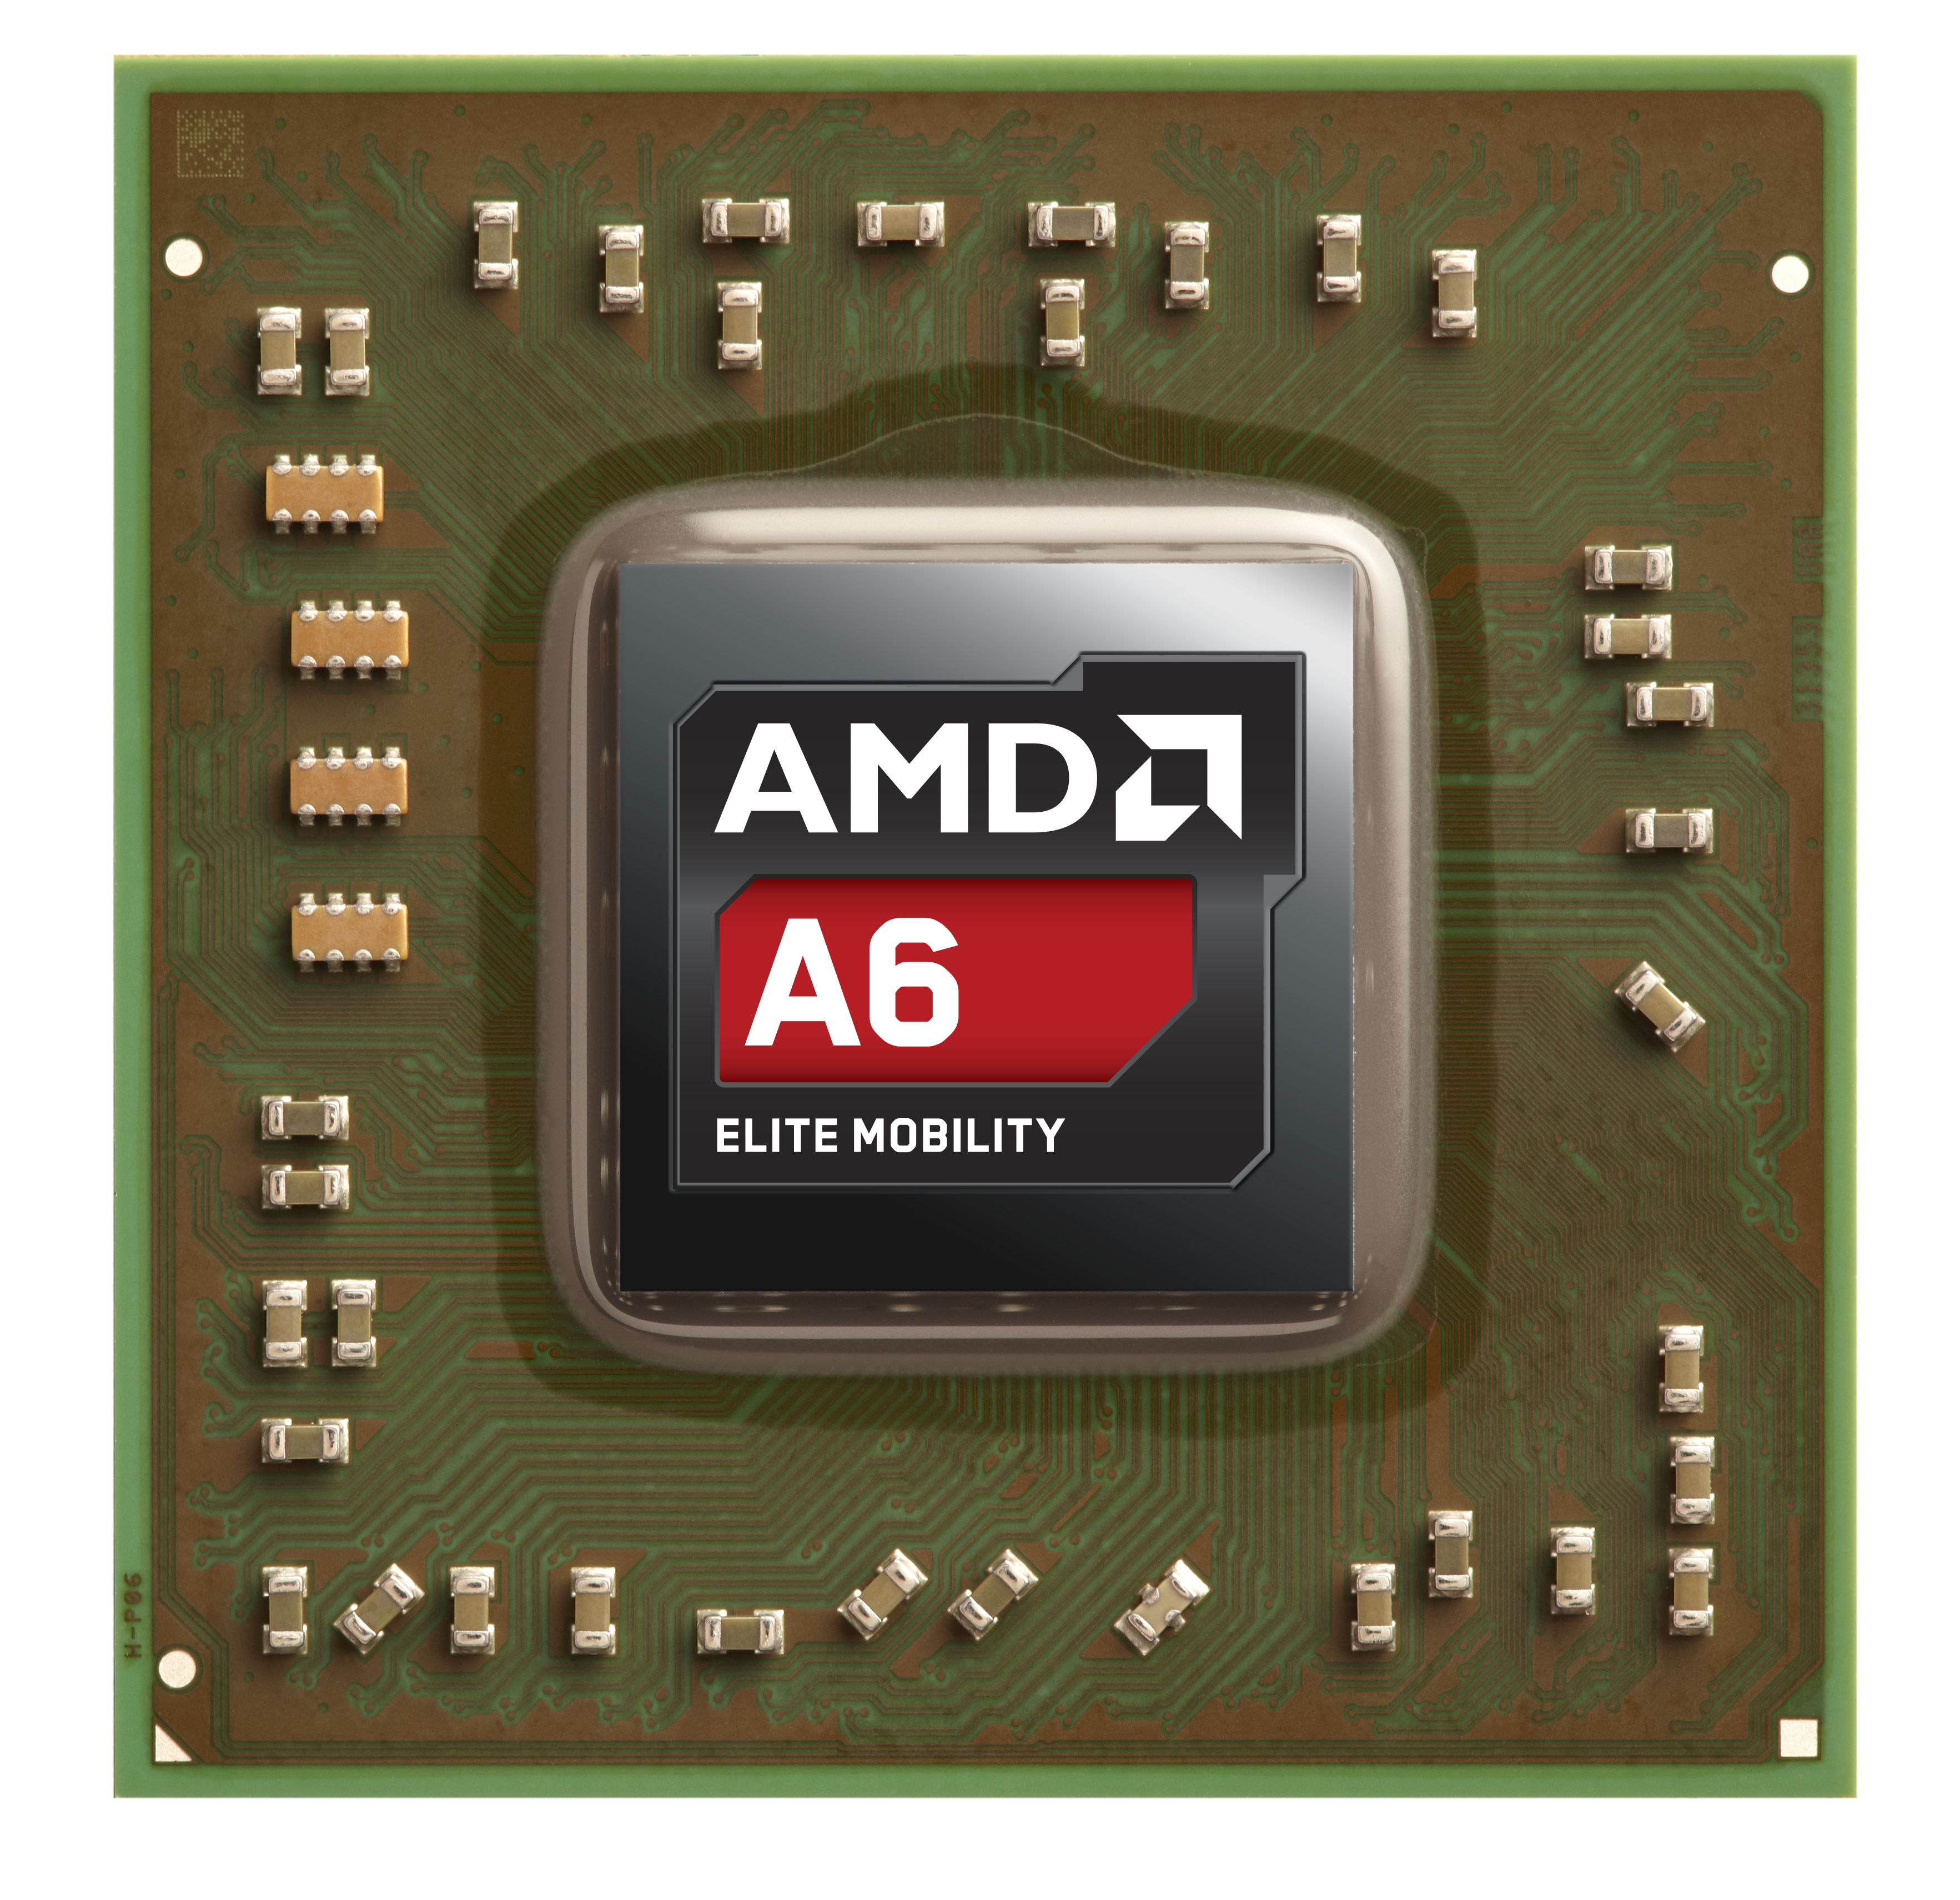 Amd Launches New Processors Amd Processor Samsung